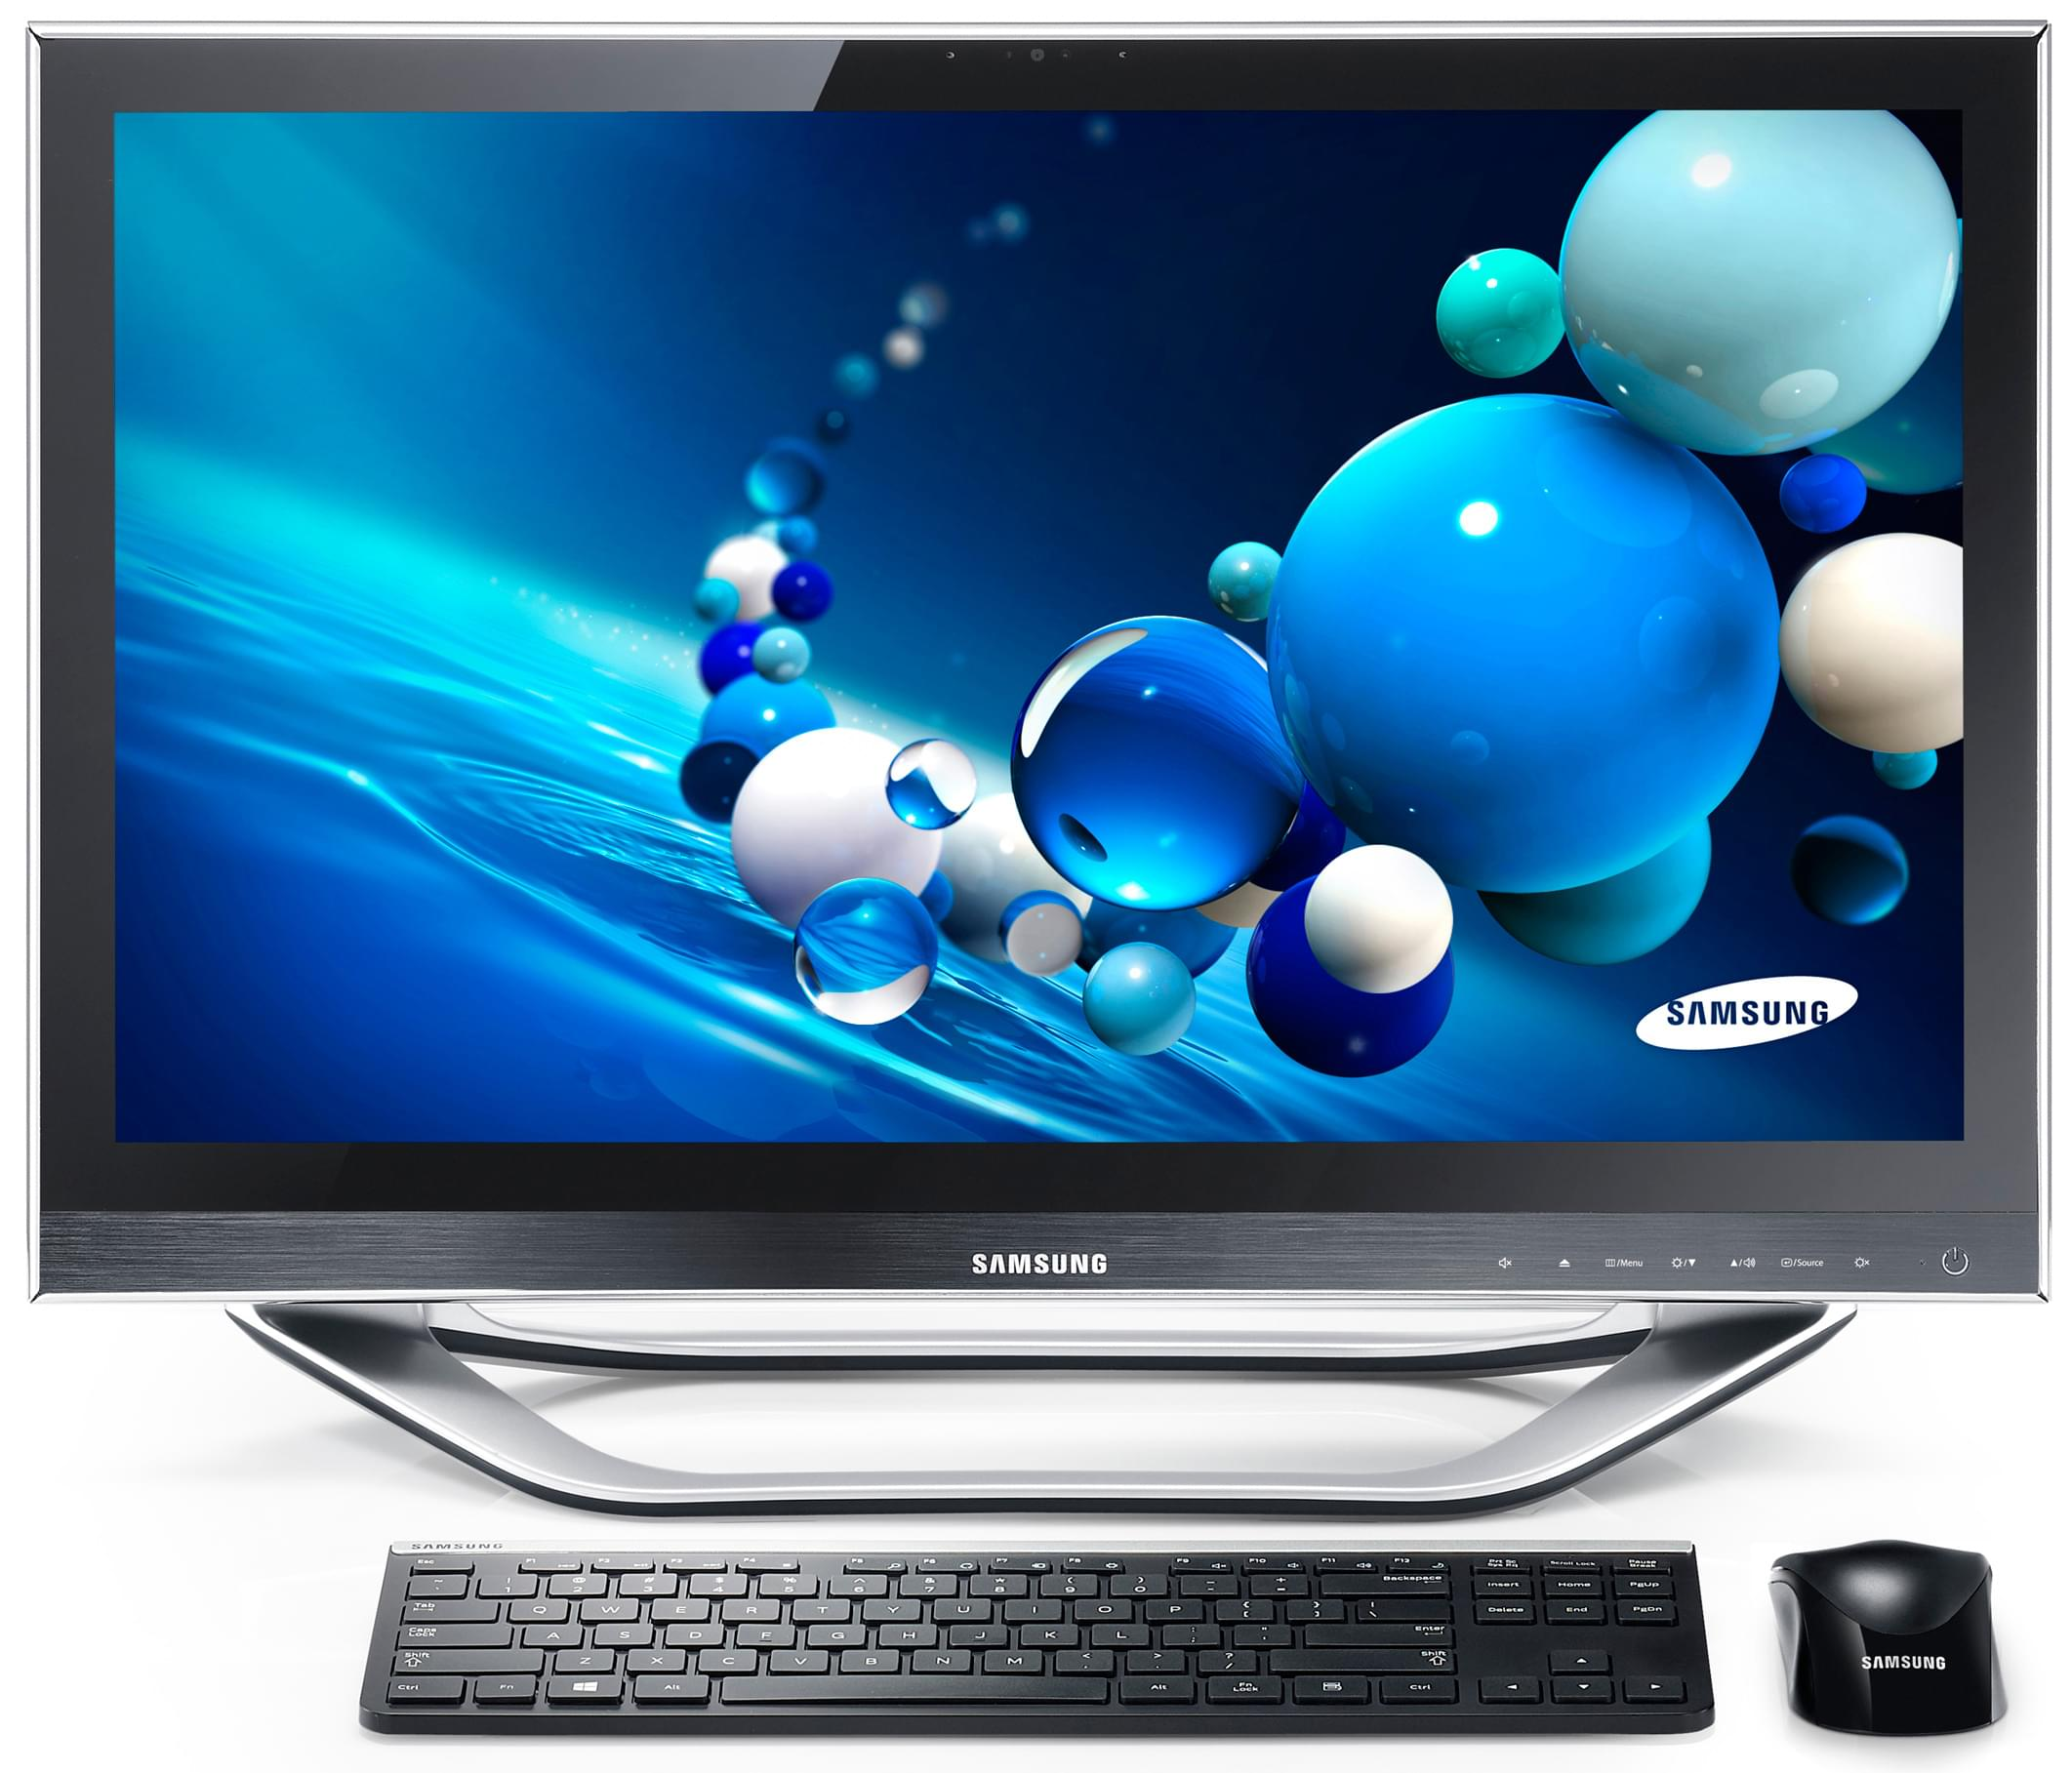 Samsung DP700A7D-S02 (DP700A7D-S02FR) - Achat / Vente All-In-One PC sur Cybertek.fr - 0